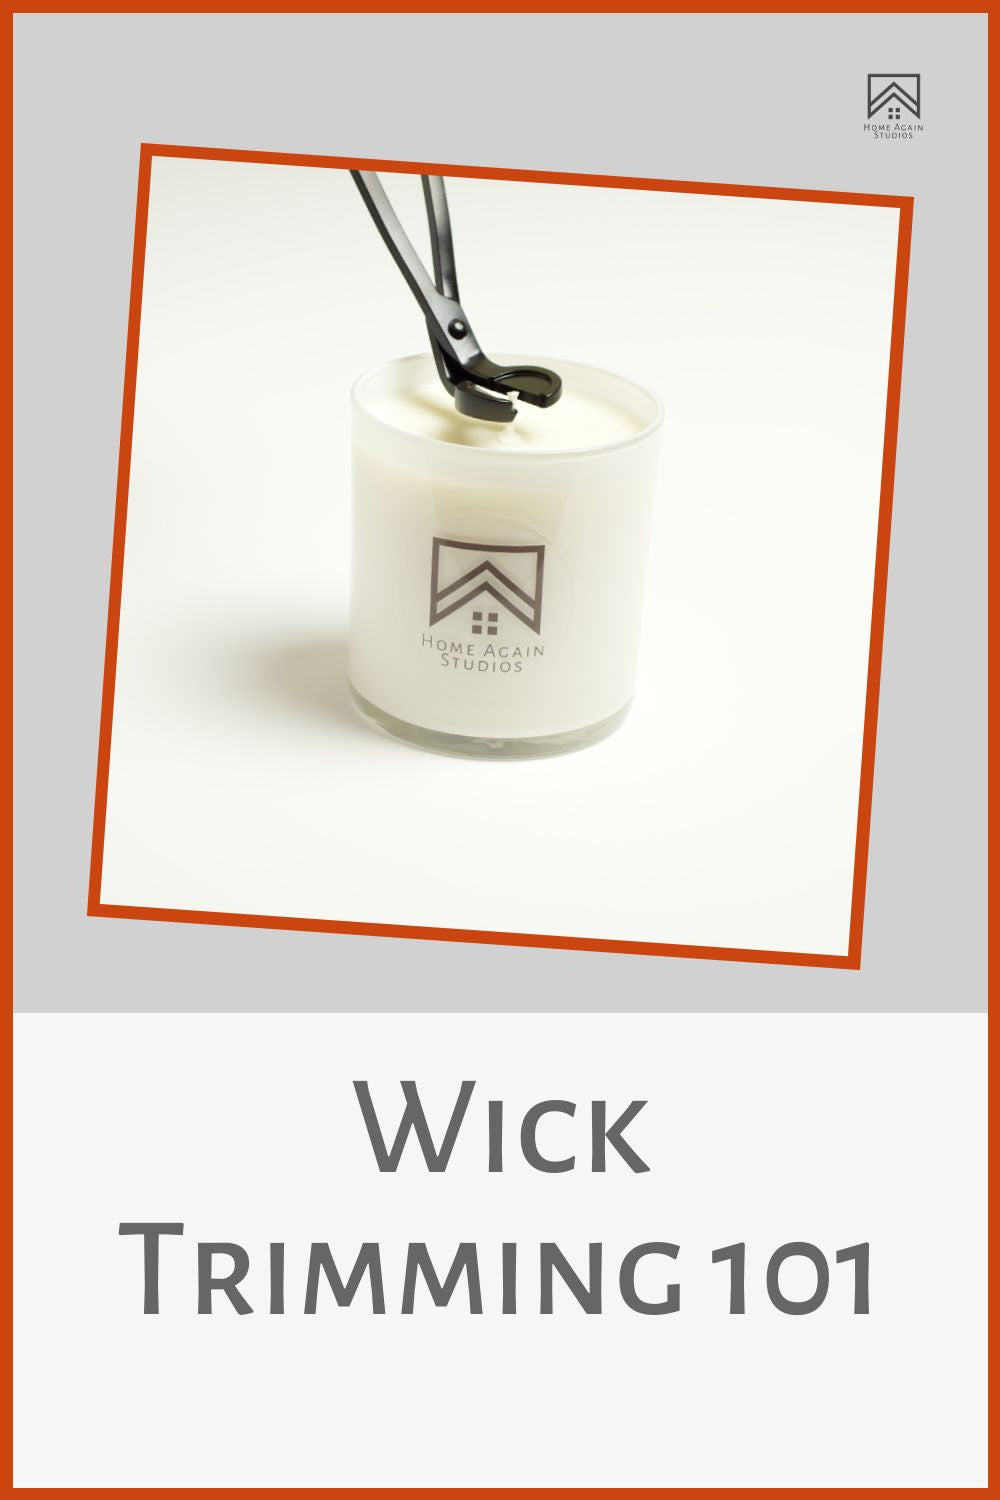 Wick Trimming 101